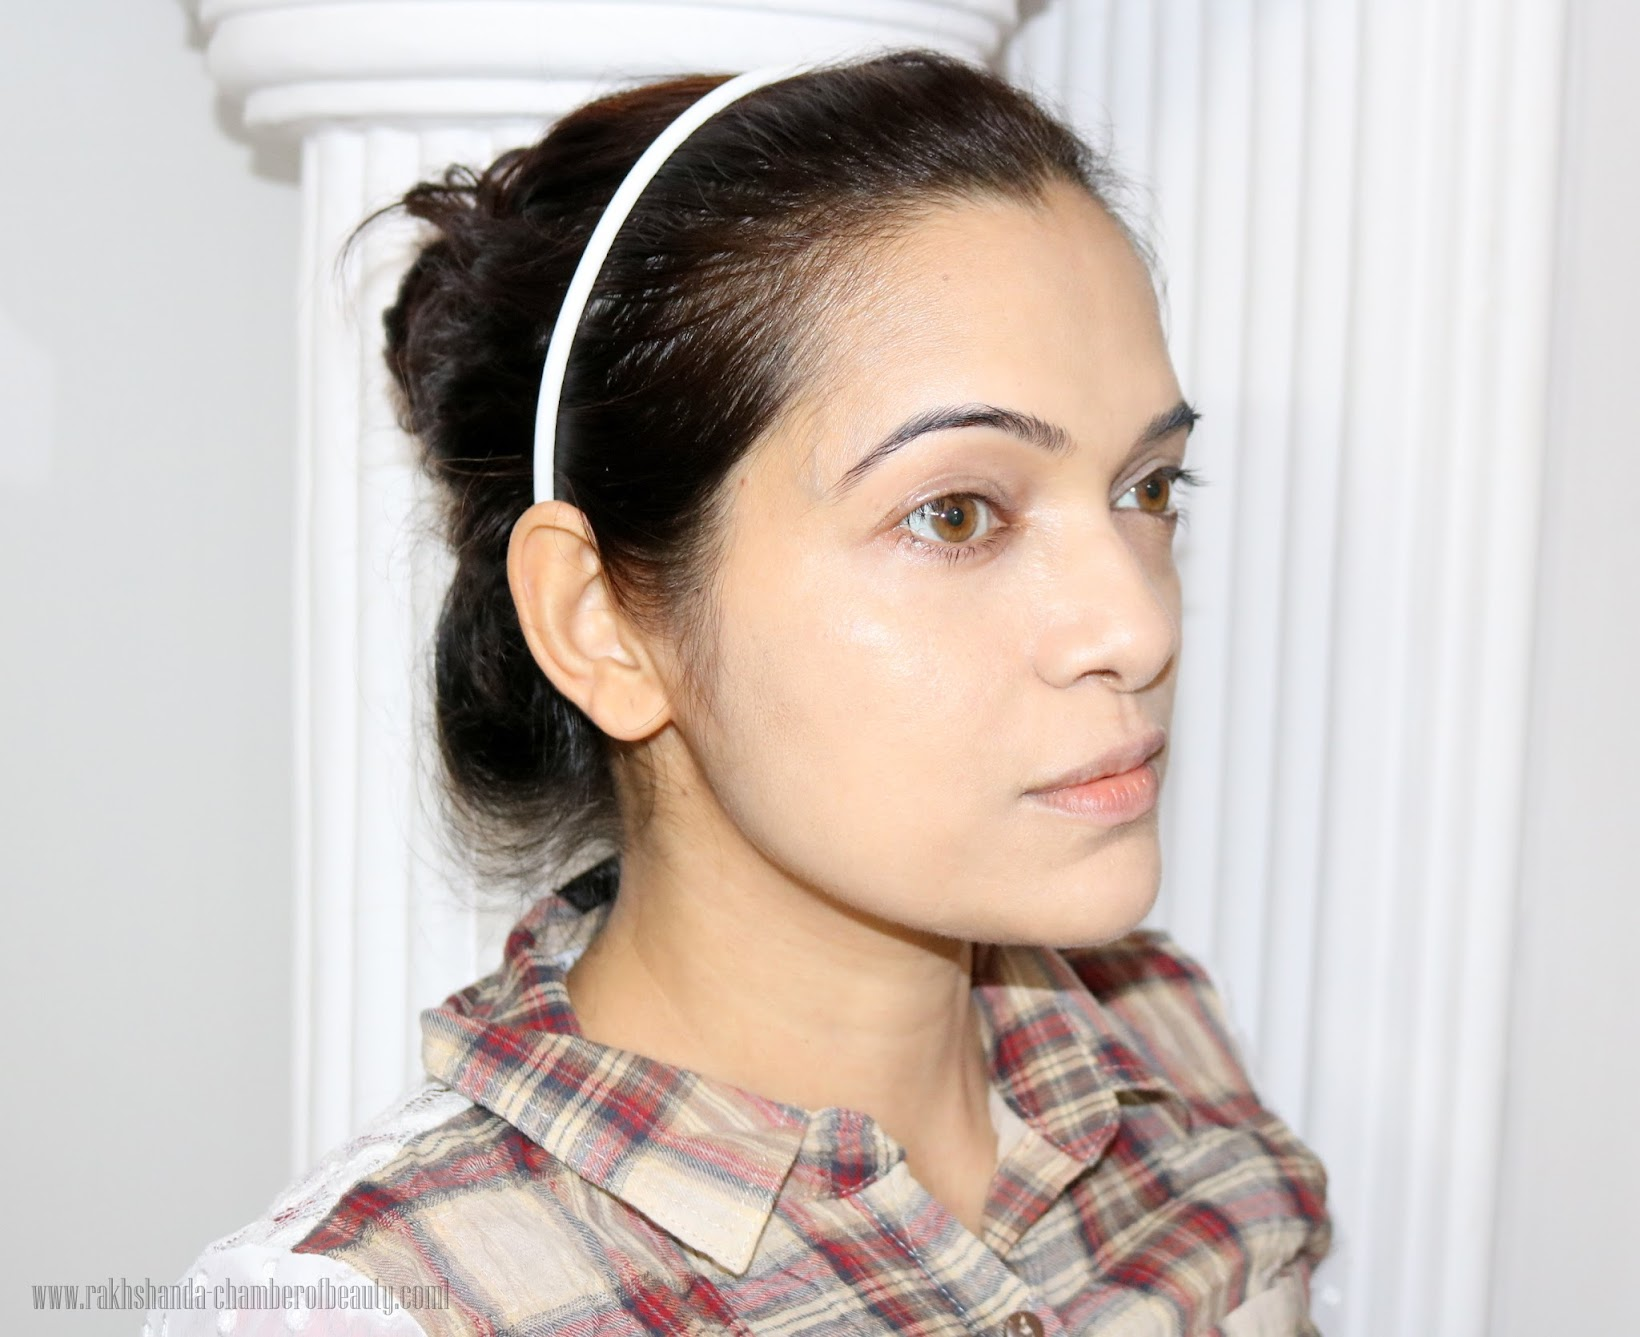 Illamasqua Radiance Veil, How to get radiant skin, FOTD, how to get lit-up glow with Illamasqua Radiance Veil, Illuminator, makeup look, tutorial, Illamasqua, Picture tutorial, how to illuminate, Indian beauty blogger, how to use Illamasqua Radiance Veil, how to get glow, makeup tips, radiant skin with radiance veil, Indian makeup blog, chamber of beauty, makeup